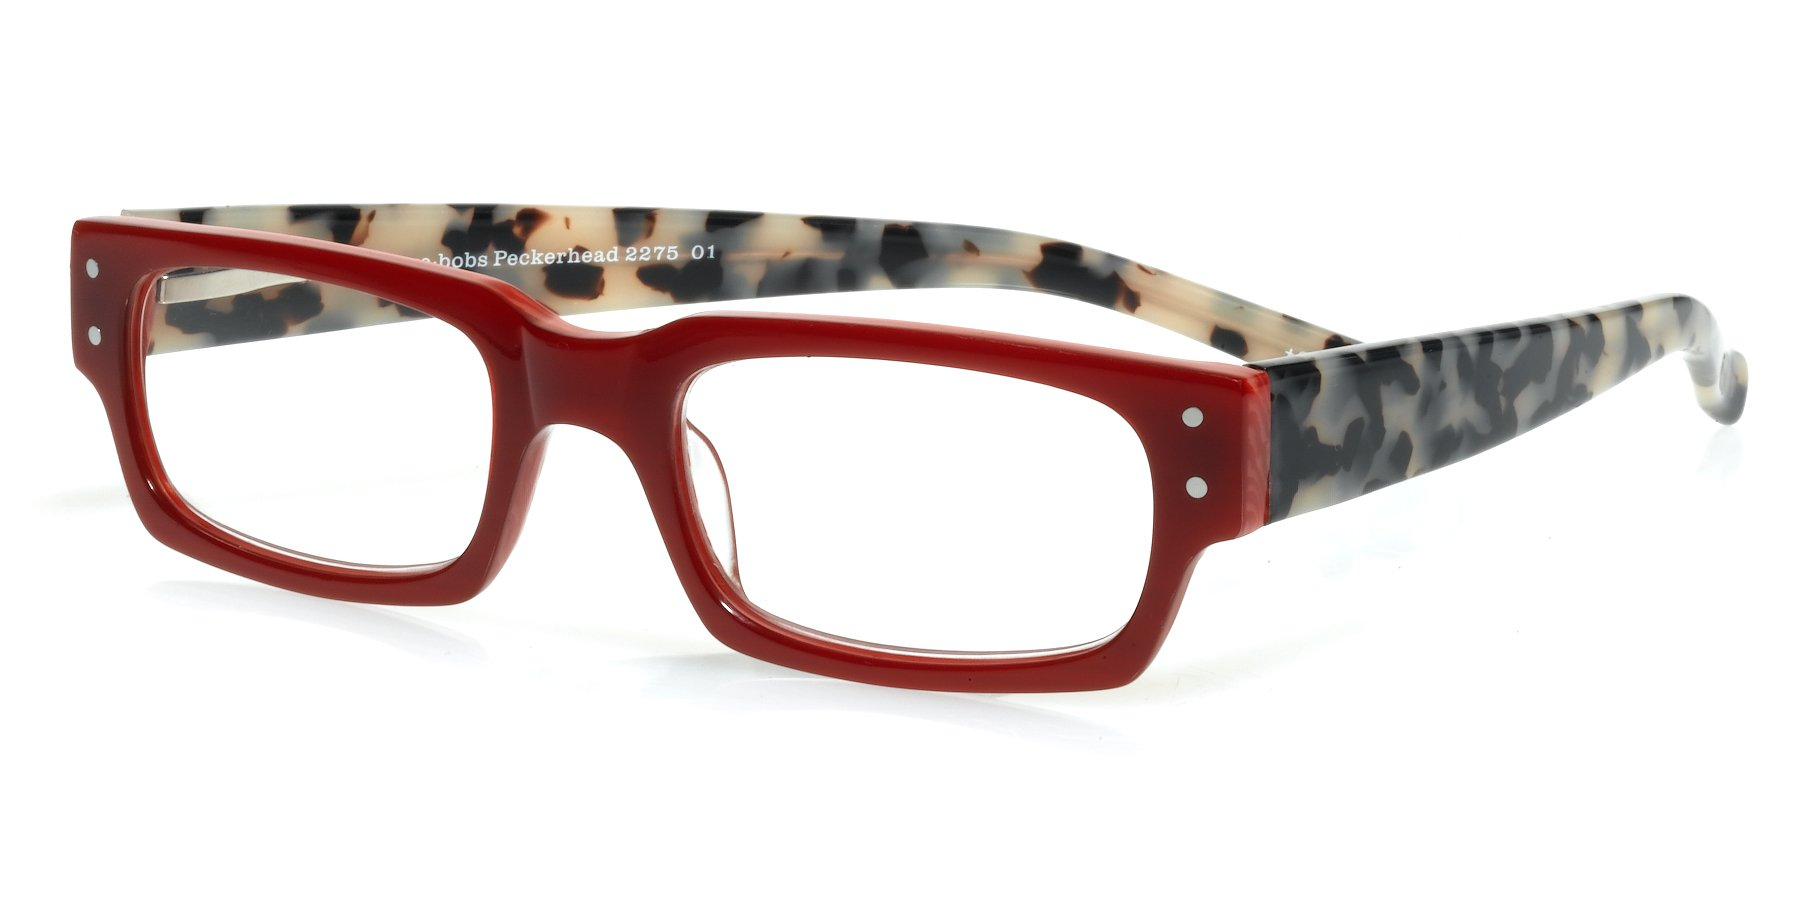 eyebobs Peckerhead, Red and Black/White Tortoise Reading Glasses - SUPERIOR QUALITY- because your eyes deserve the good stuff by EyeBobs